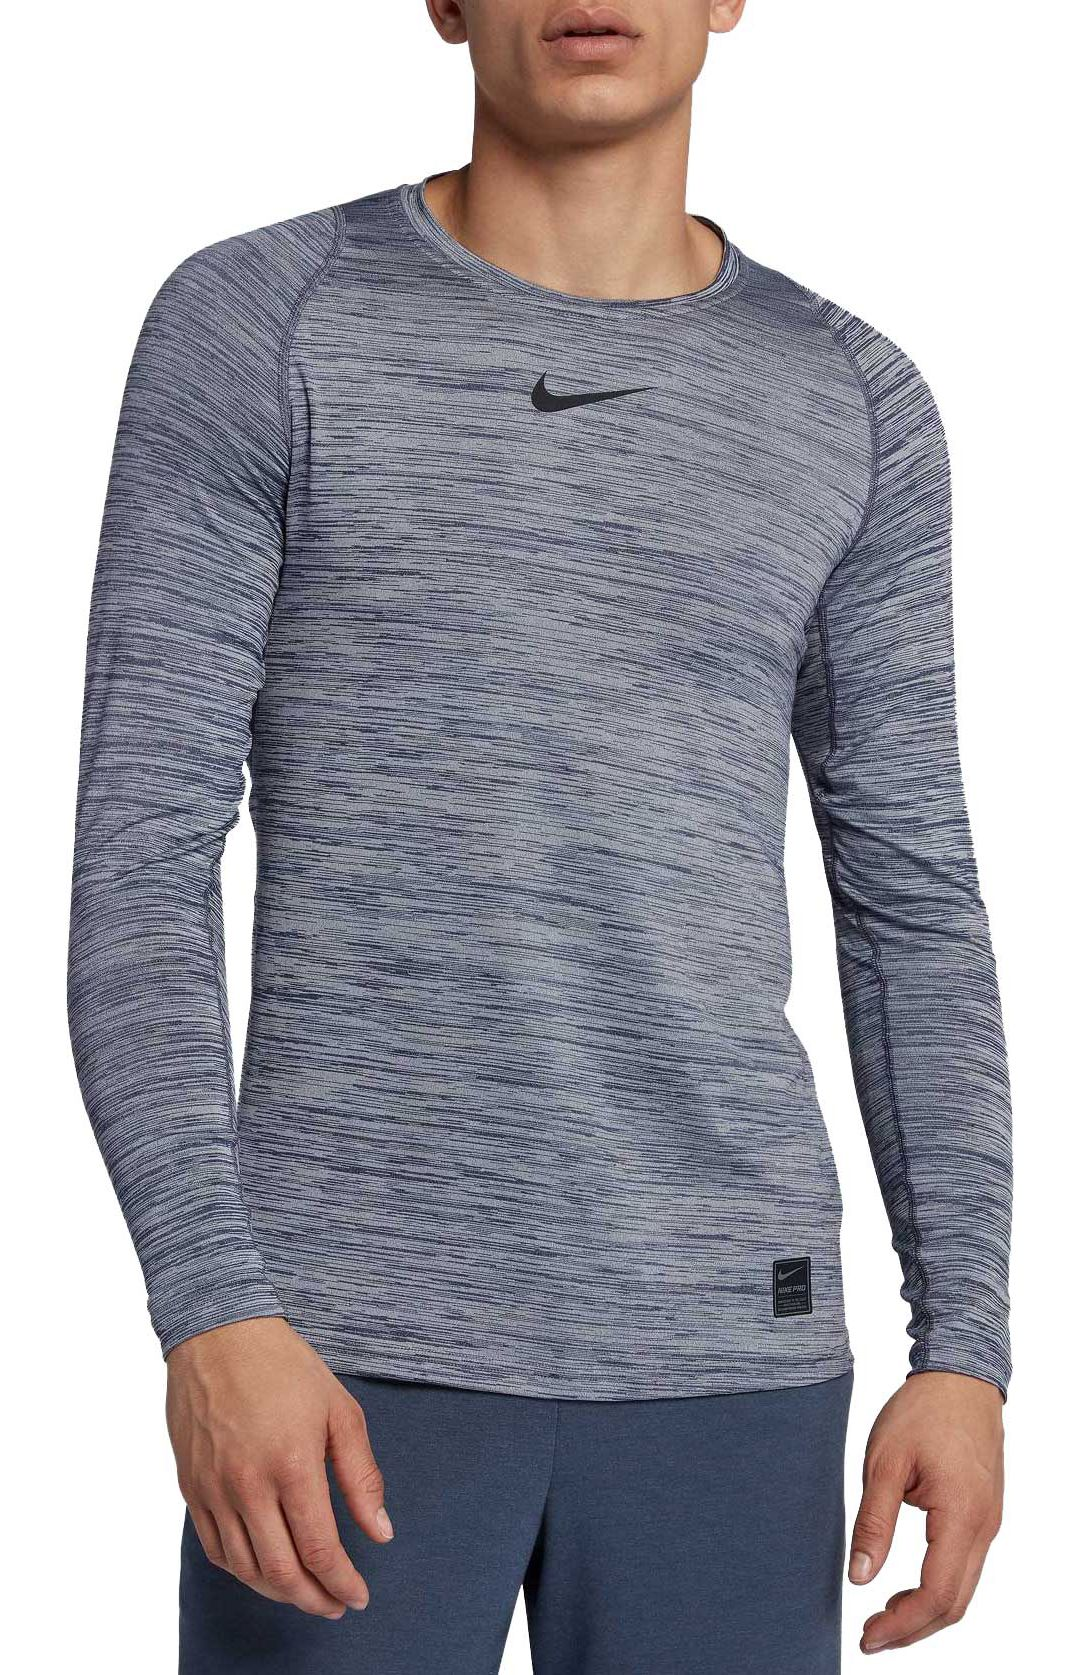 100% authentic recognized brands boy Nike Men's Pro Heather Long Sleeve Fitted Shirt